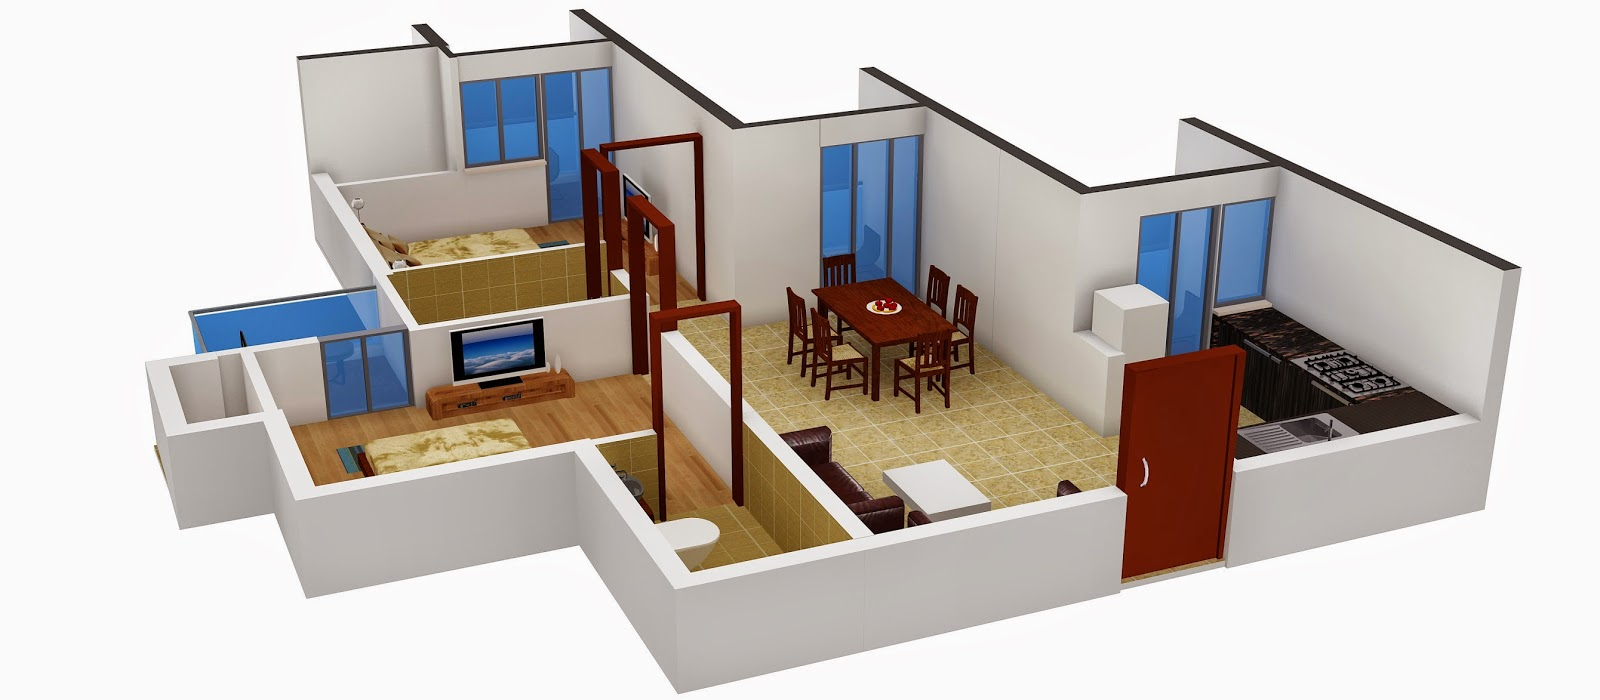 Interior design 2bhk flat for 1 bhk interior design cost